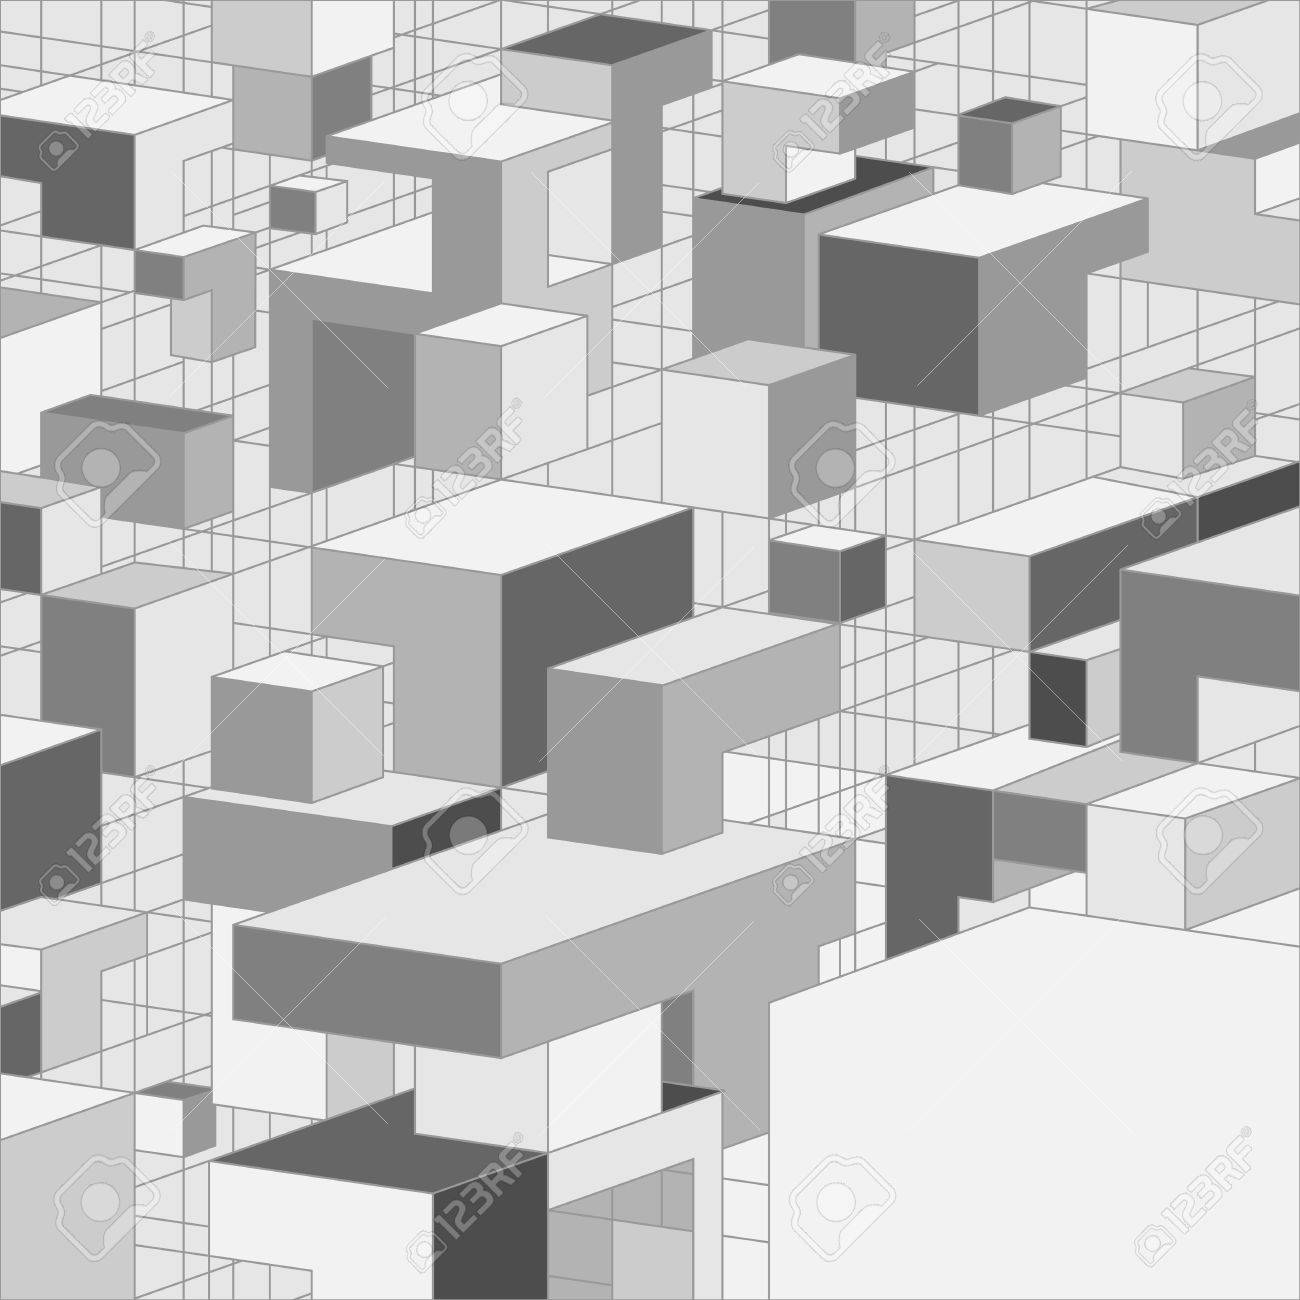 Abstract Greyscale 3d Background Illustration For Design Royalty Free Cliparts Vectors And Stock Illustration Image 15807786